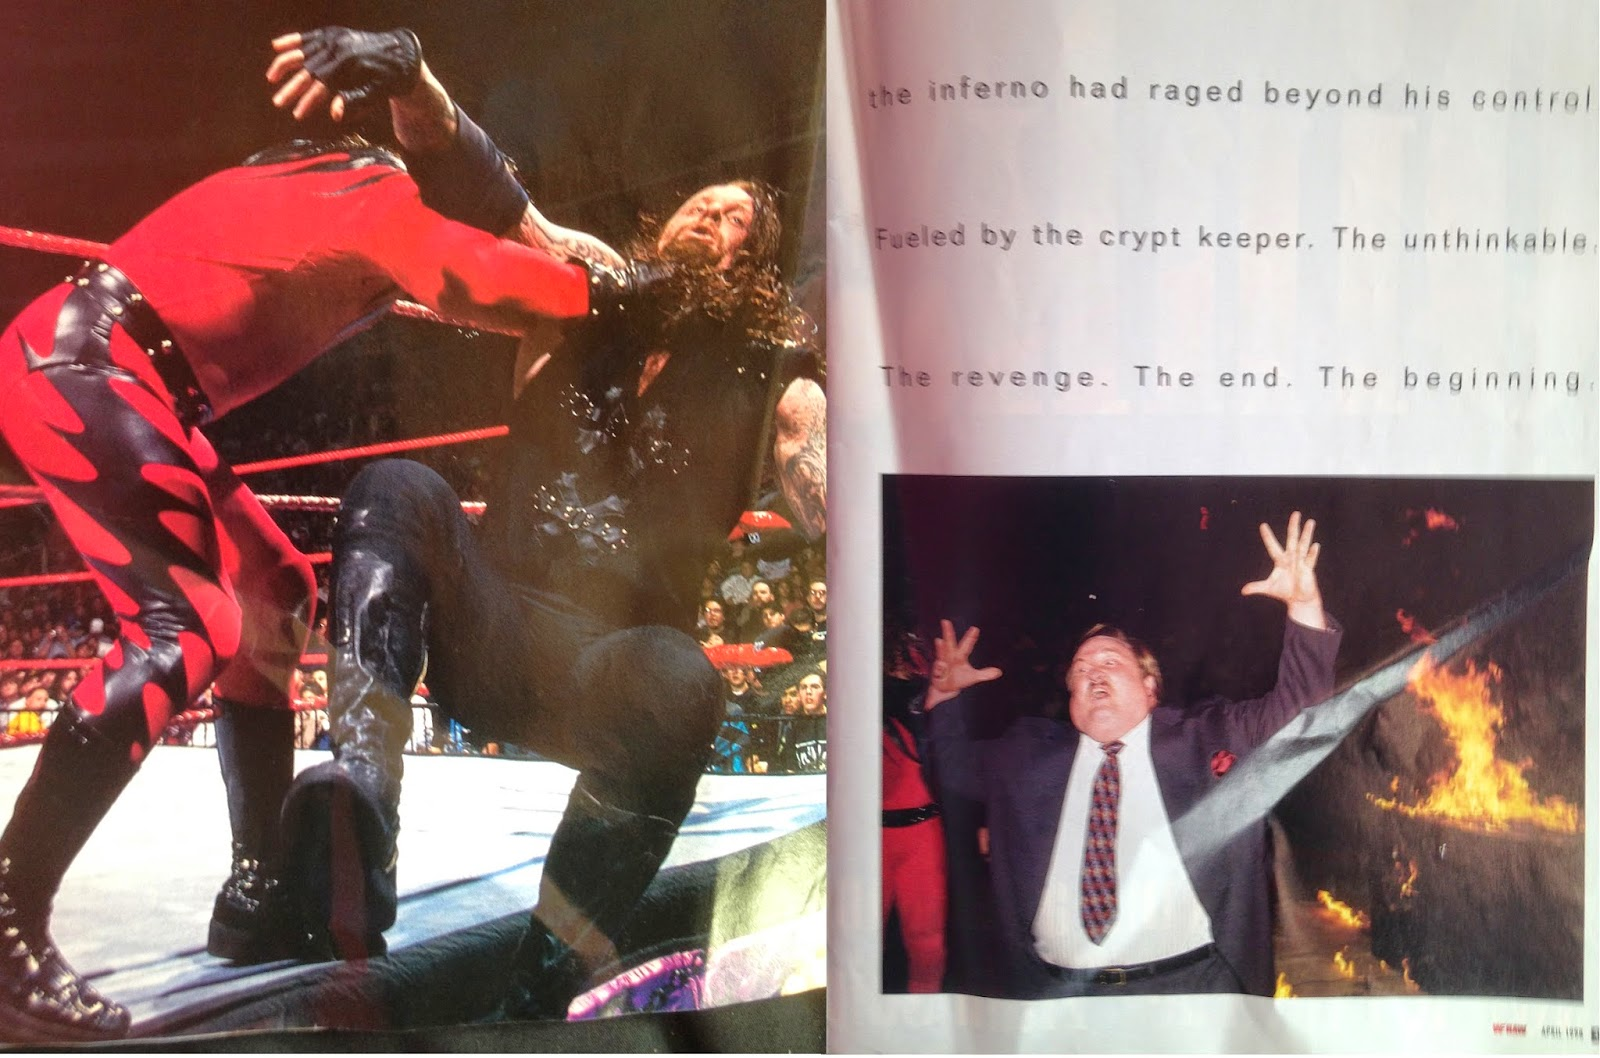 WWE - WWF Raw Magazine - April 1998 -  Kane chokeslams The Undertaker